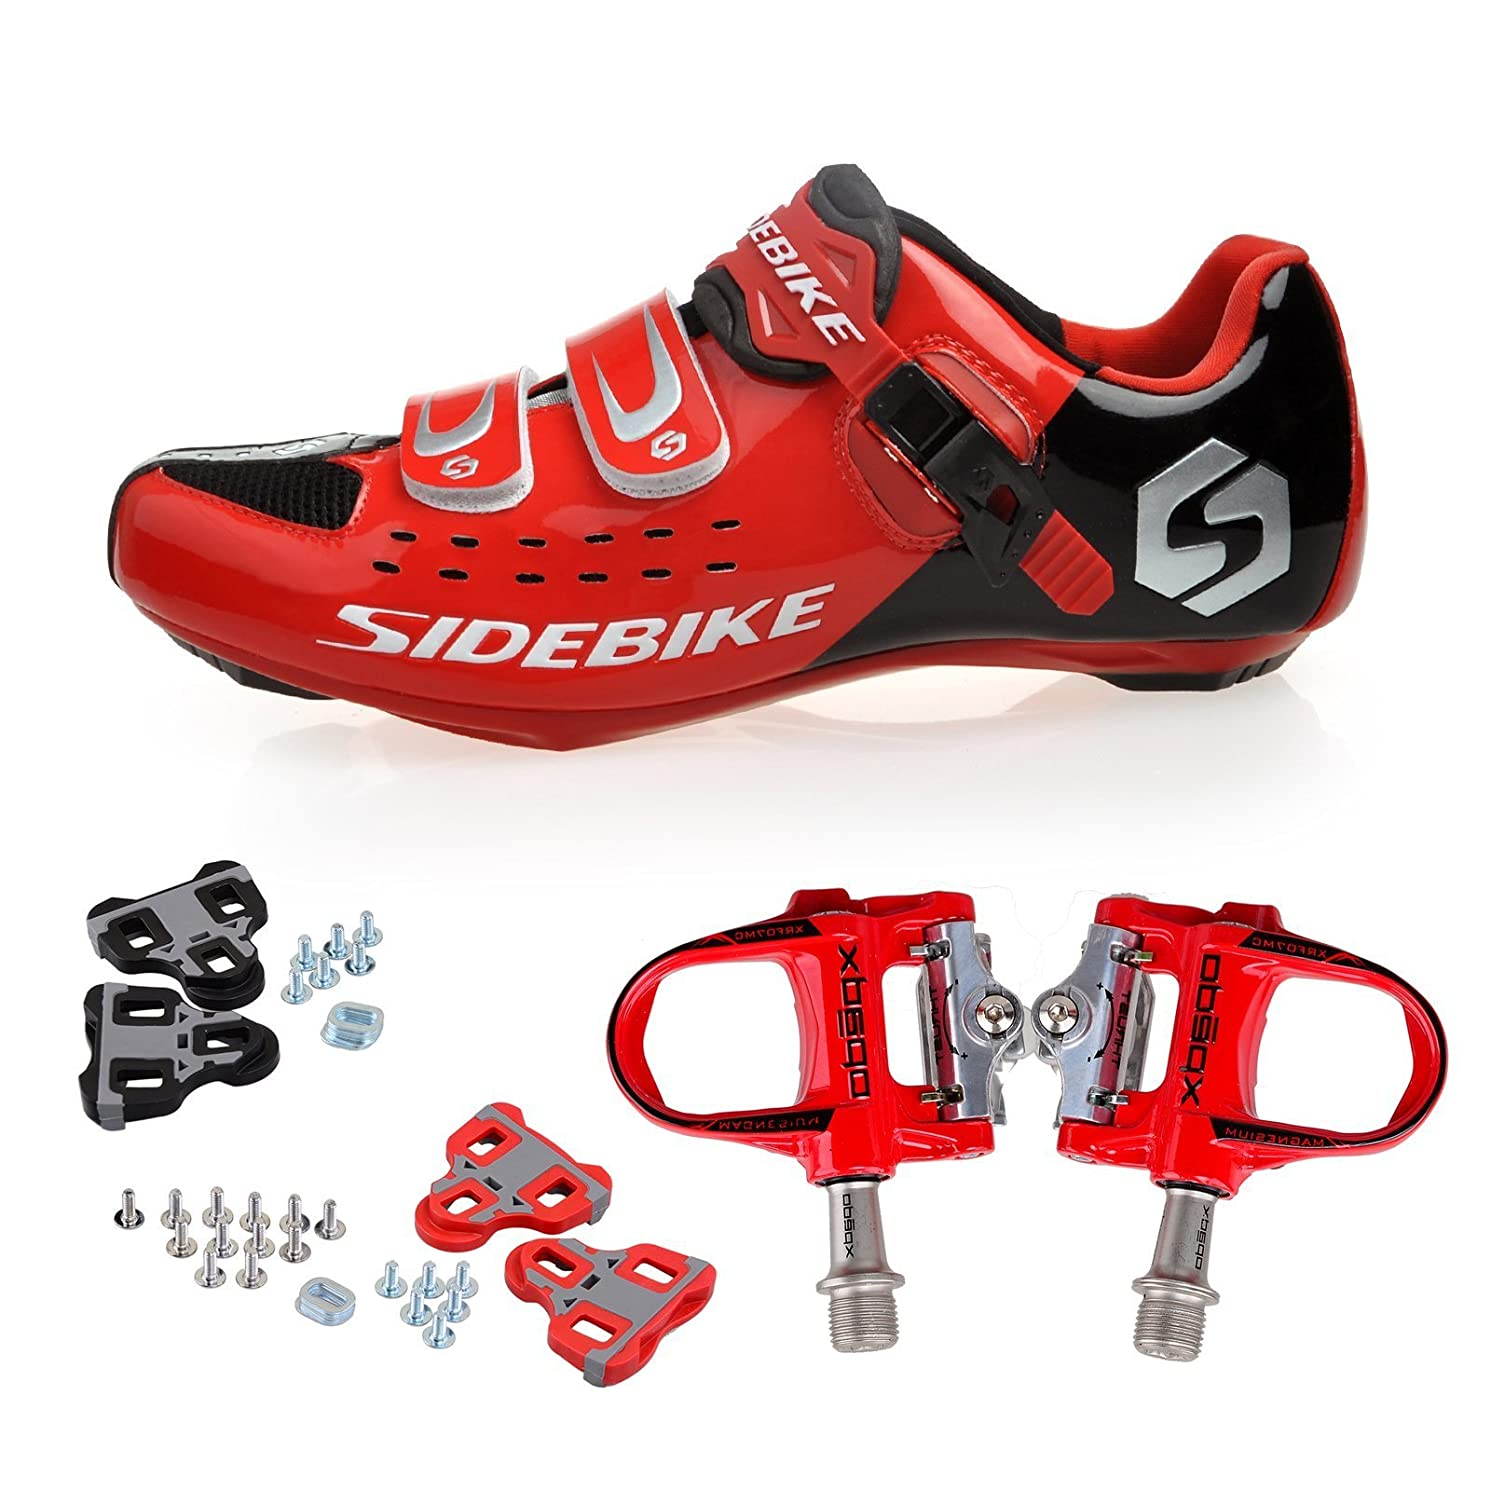 KUKOME Sidebike Road Cycling Shoes & Pedals in Various Sizes and Colors